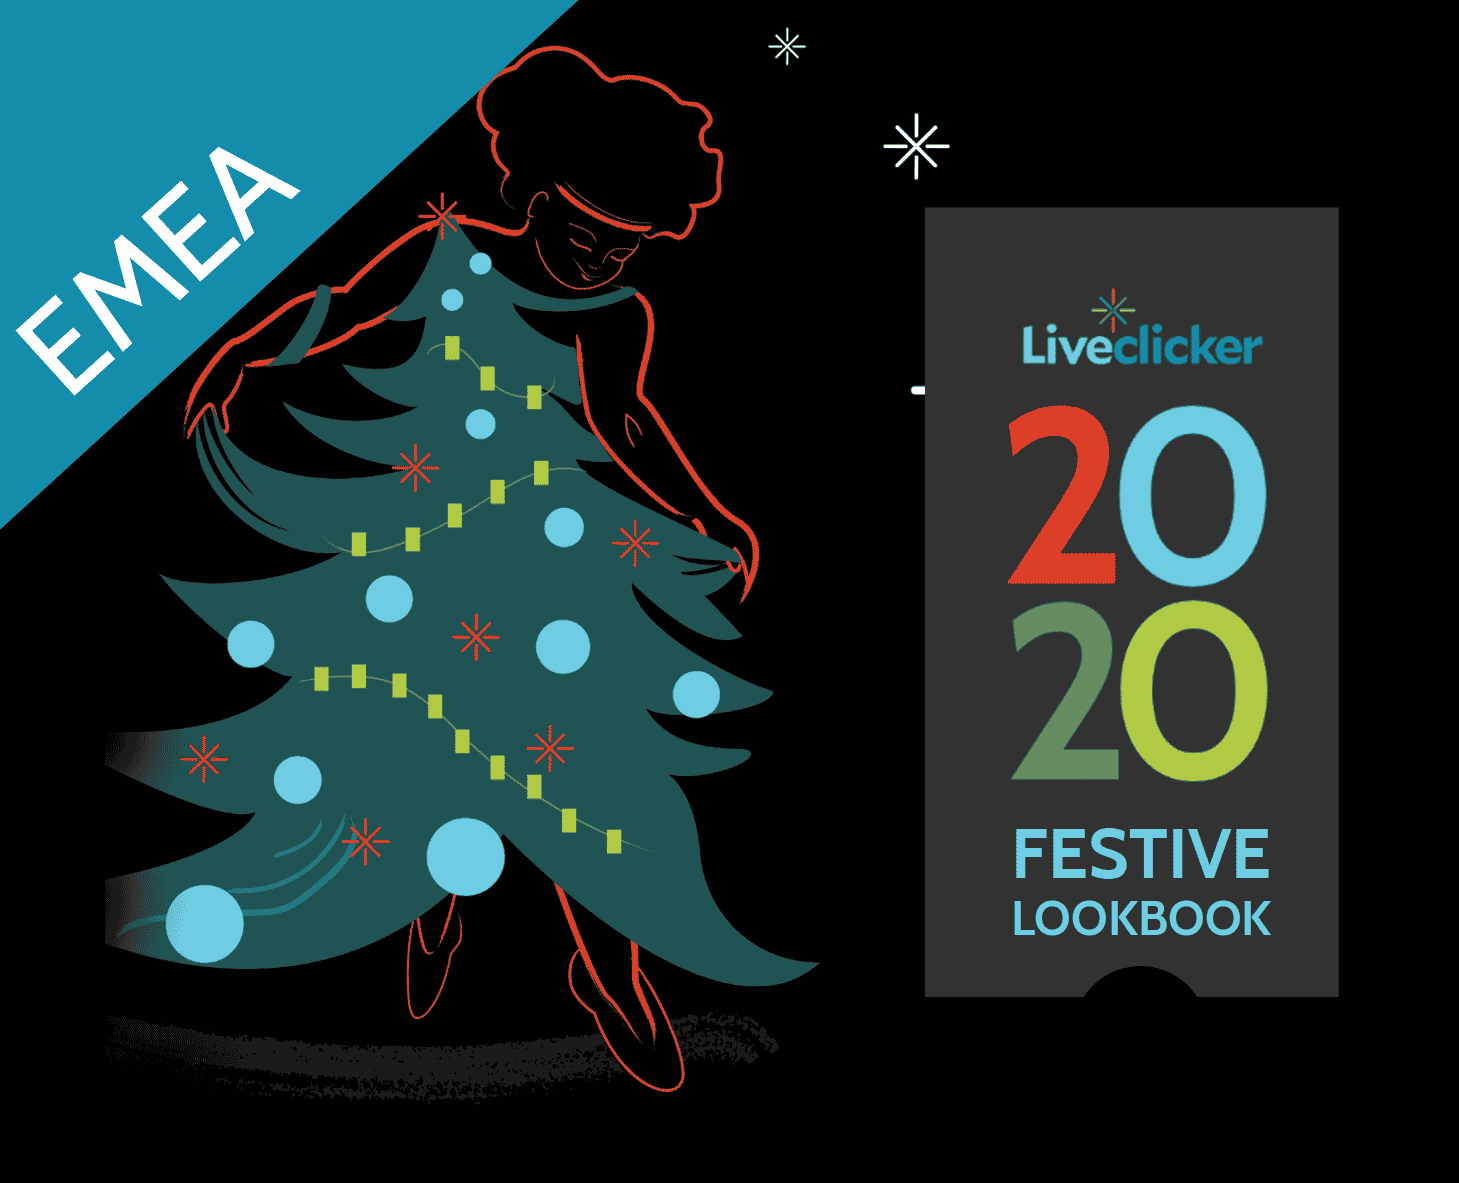 EMEA 2020 Festive Lookbook